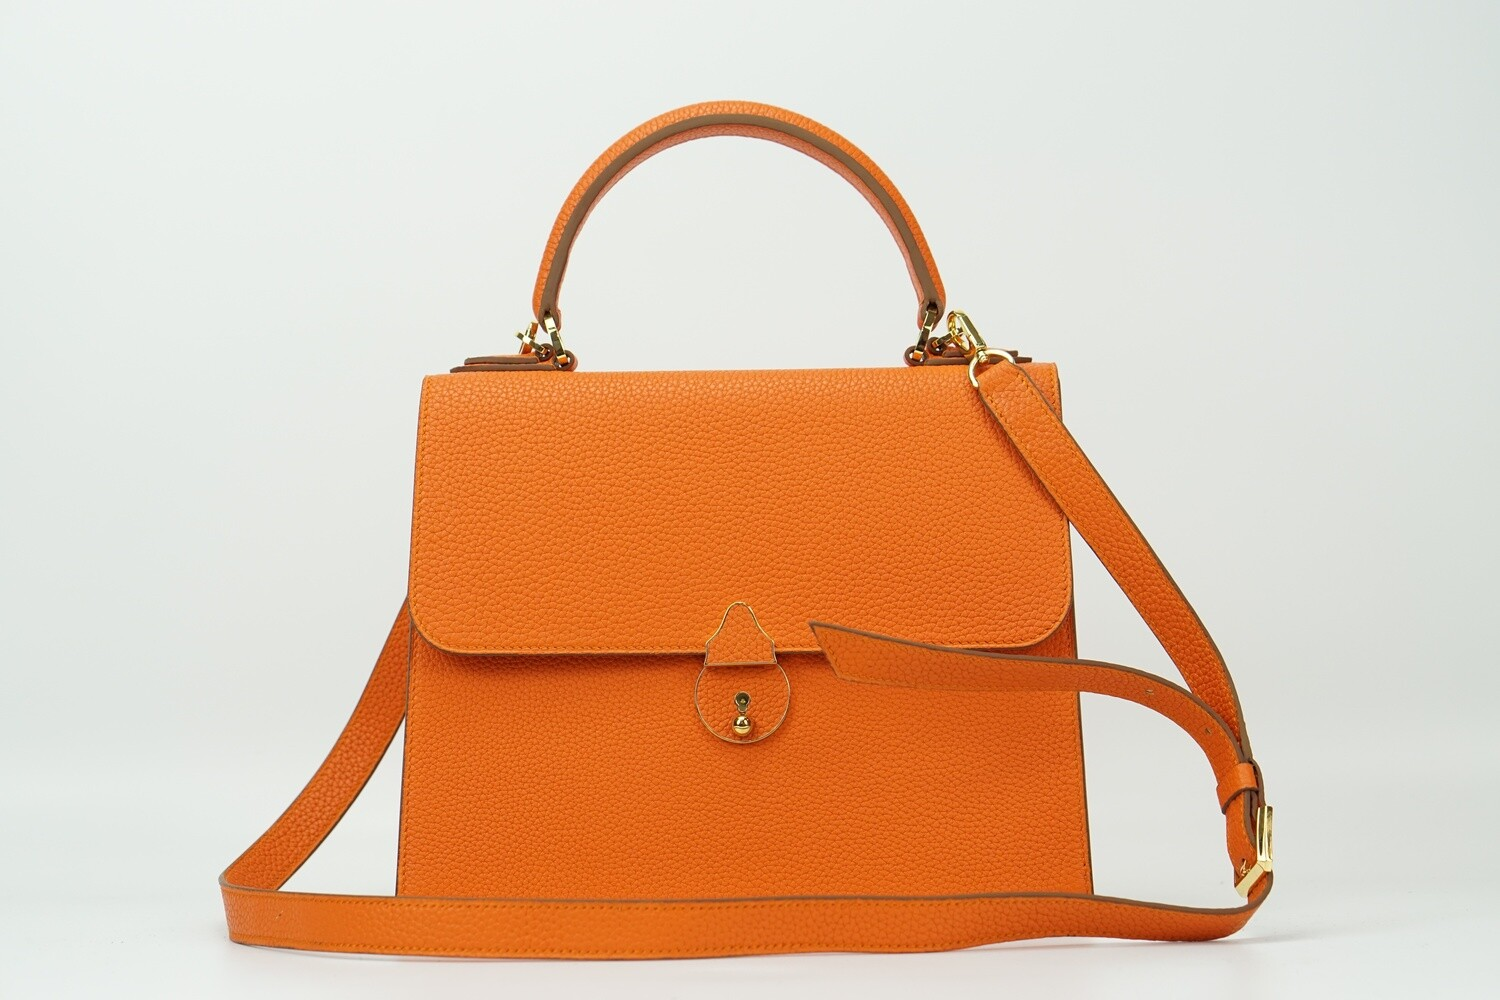 Dolores 25 Togo Orange/Beige